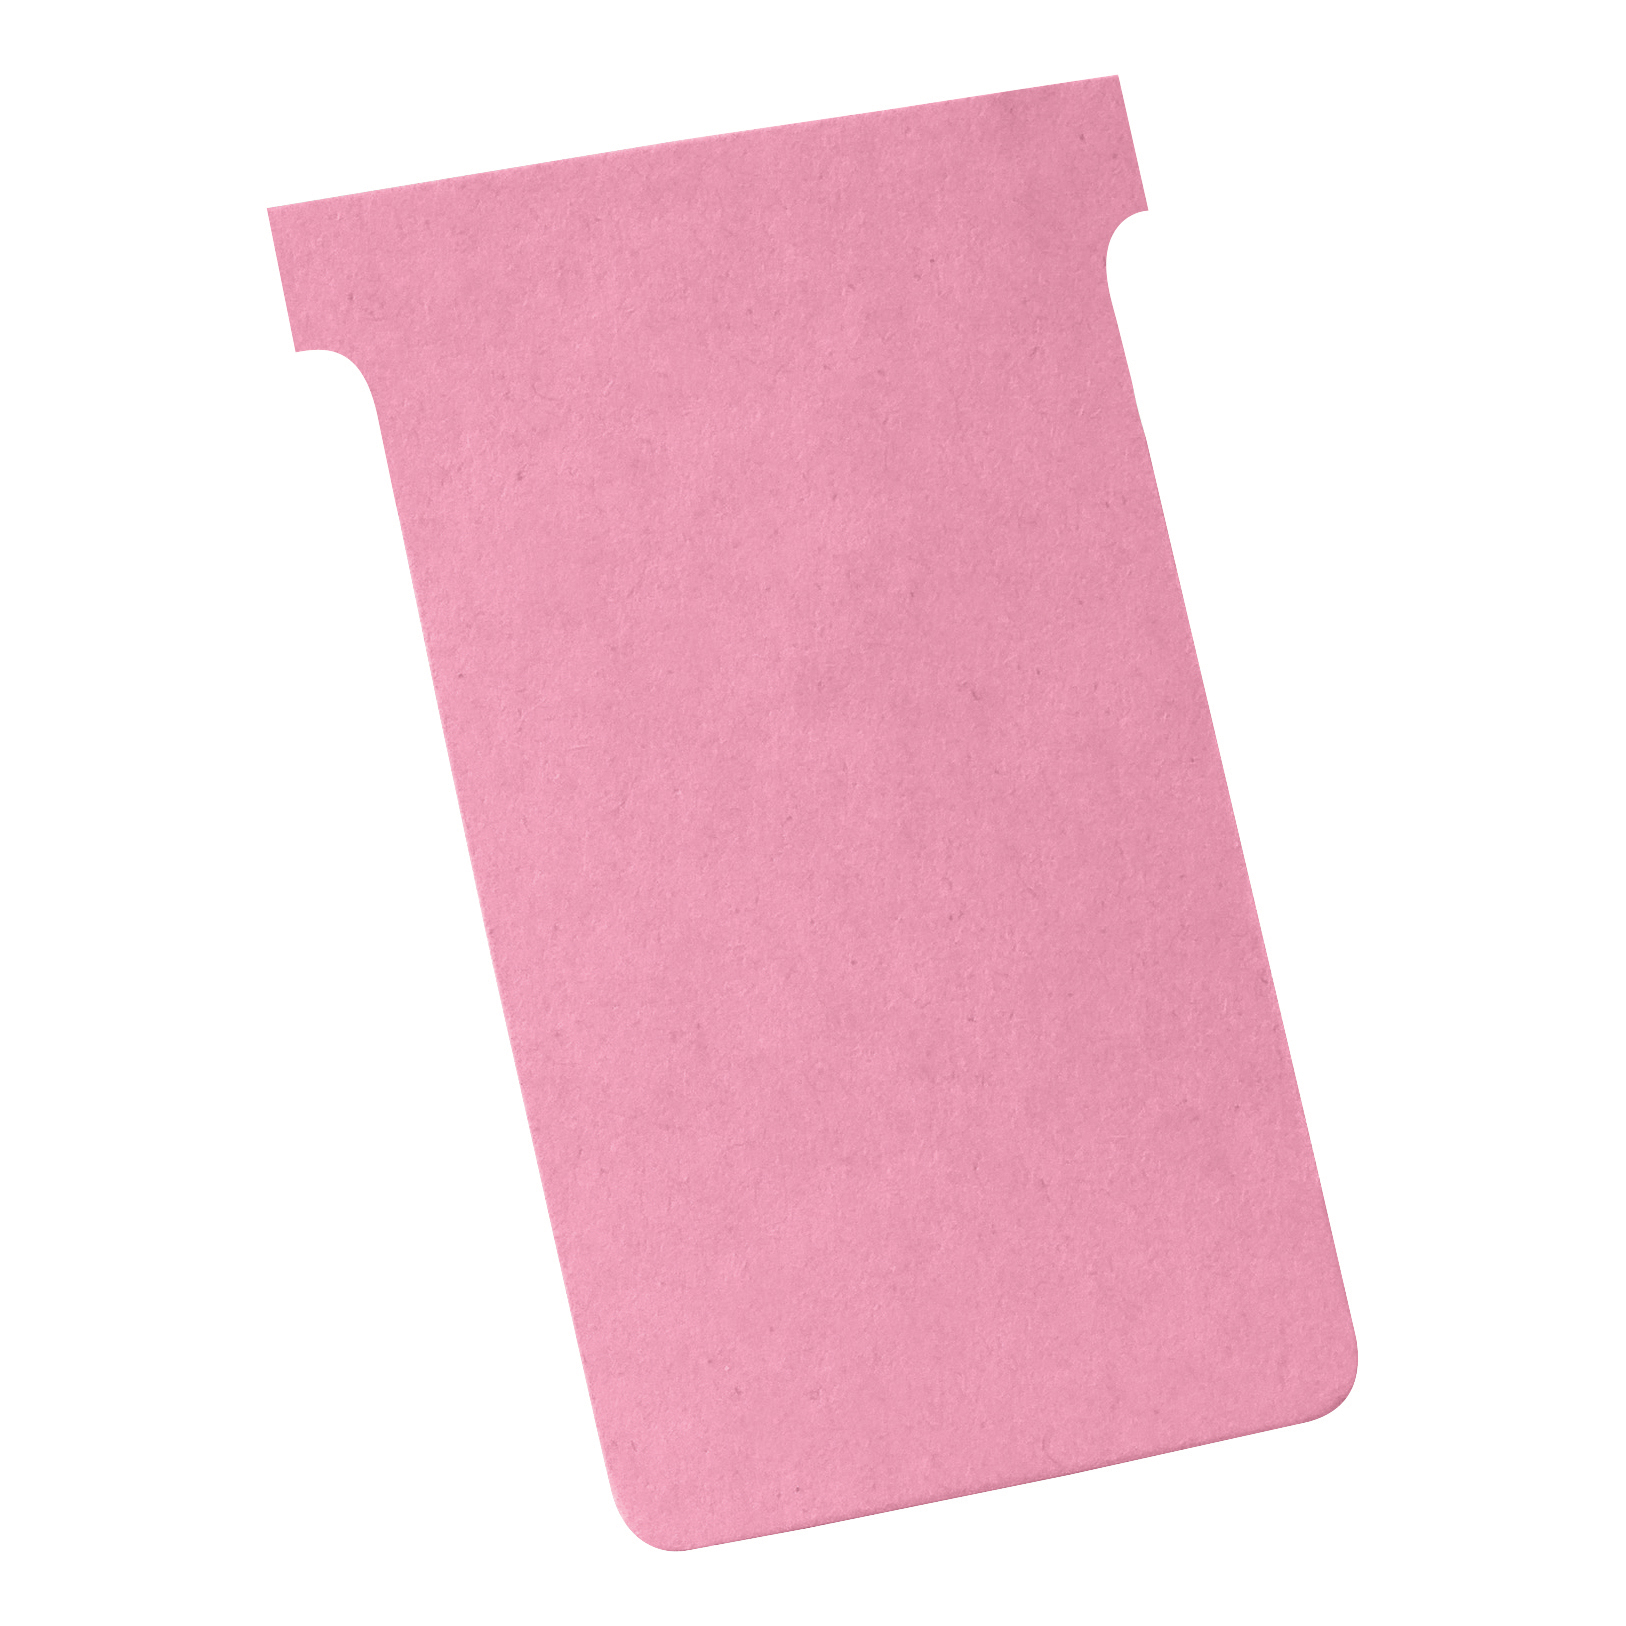 Nobo T-Cards 160gsm Tab Top 15mm W123x Bottom W112x Full H178mm Size 4 Pink Ref 2004008 [Pack 100]